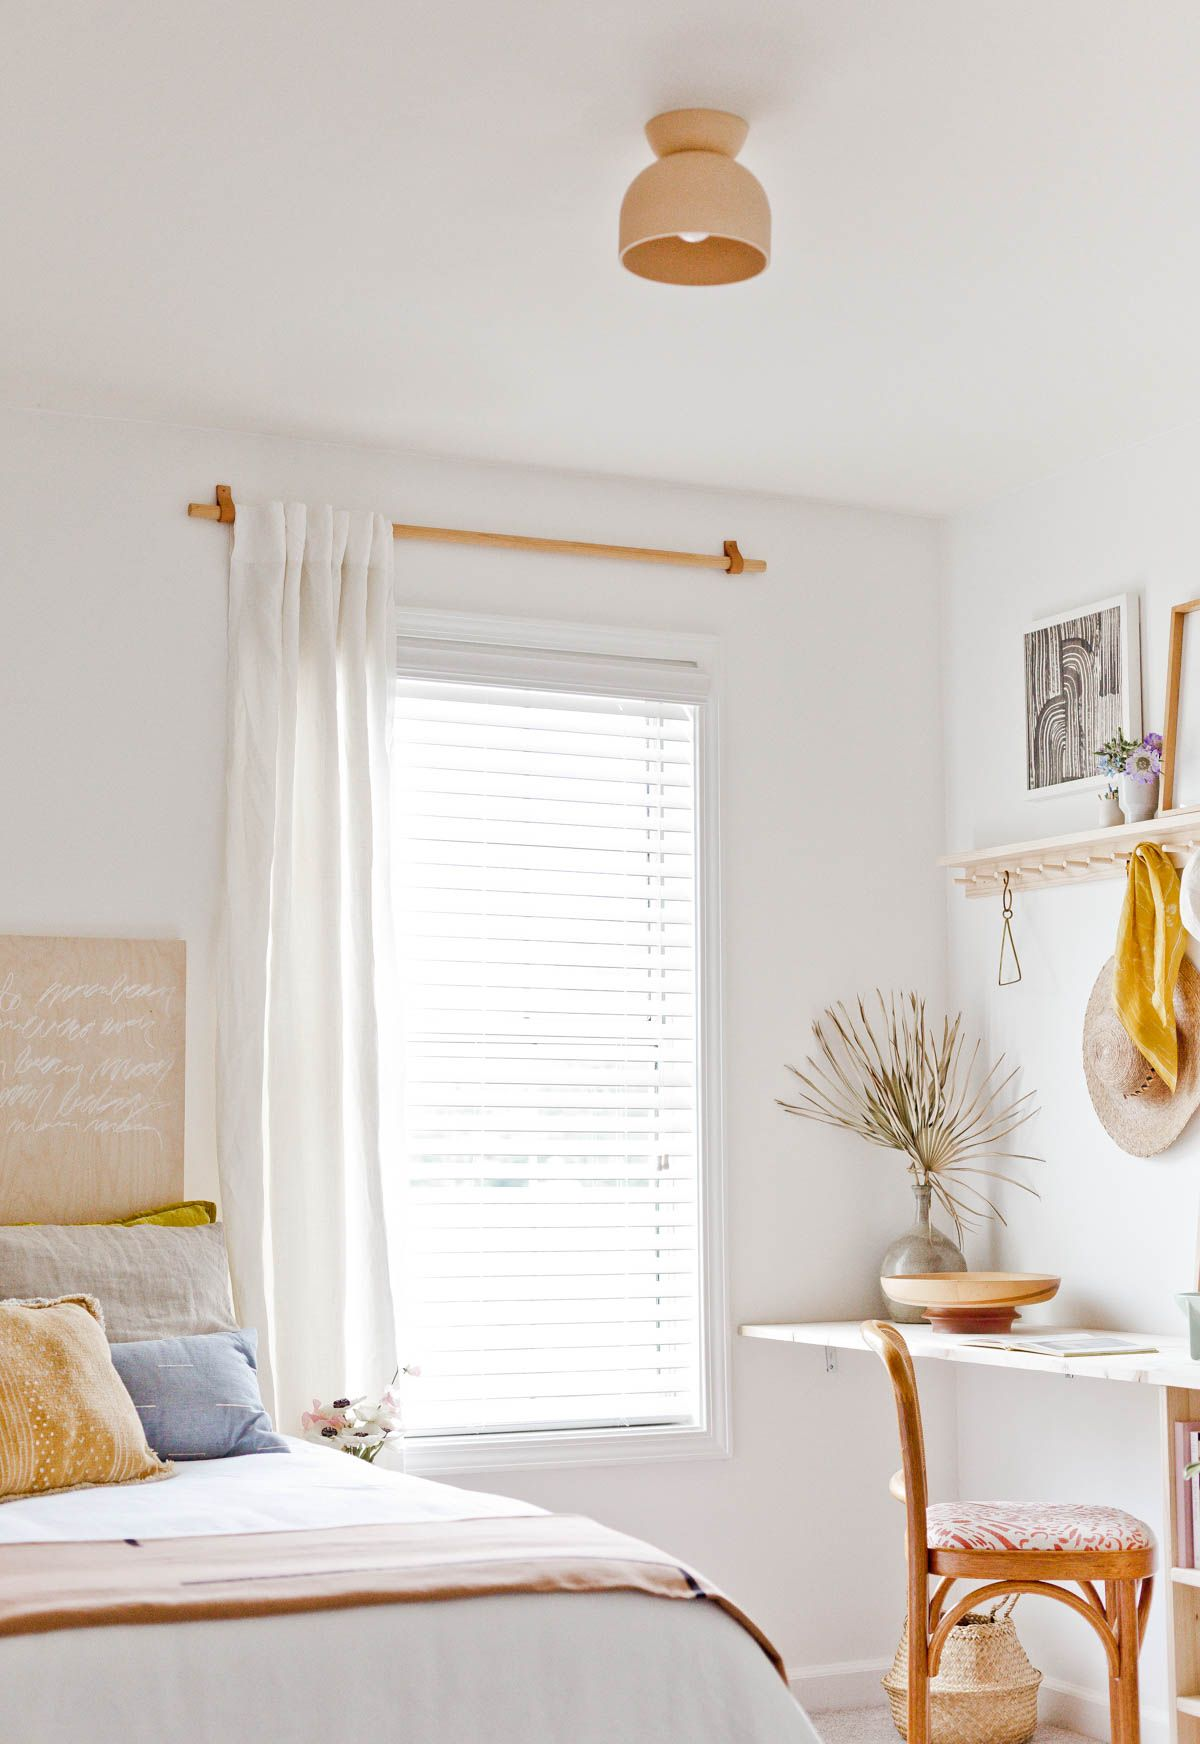 How To Make A Simple Curtain Rod For Less Than 10 After Sharing